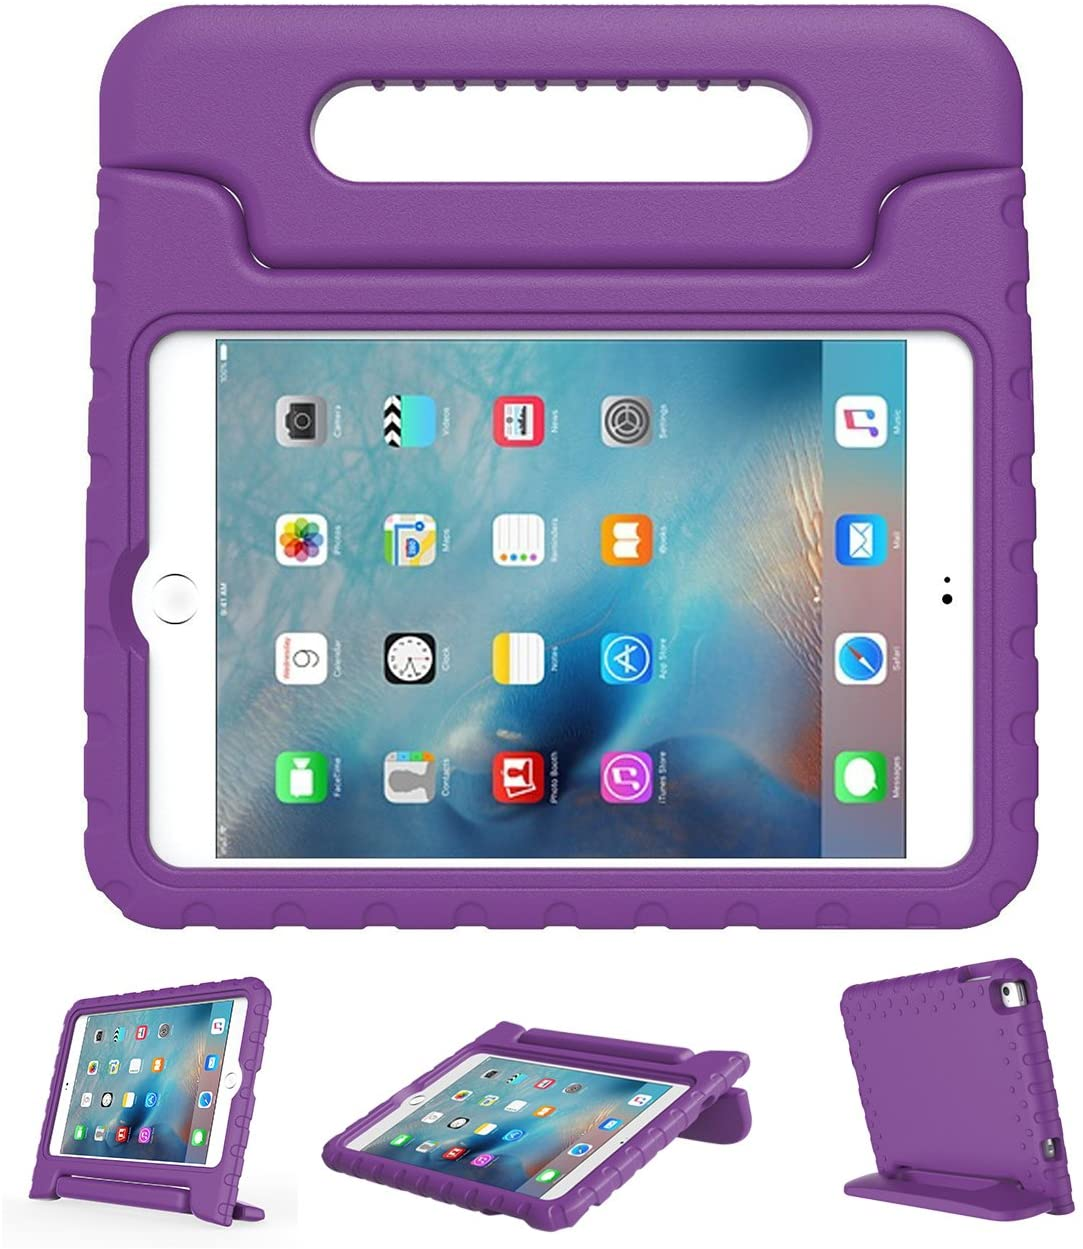 LEFON Kids Case Shockproof for iPad Mini 4 Convertible Handle Light Weight Super Protective Stand Cover Case for Apple iPad Mini 4 Tablet 2015 Released